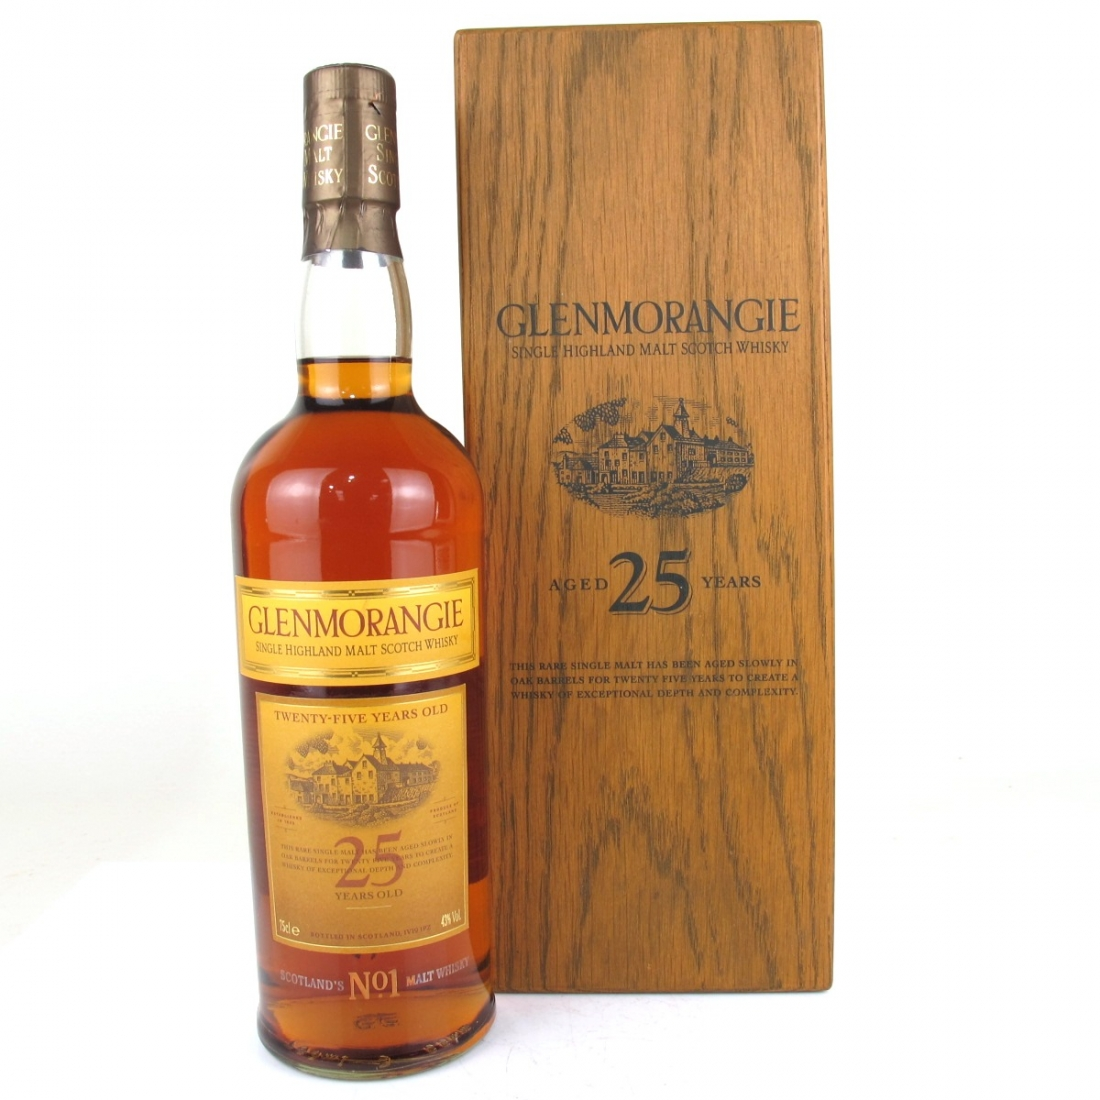 Glenmorangie 25 Year Old